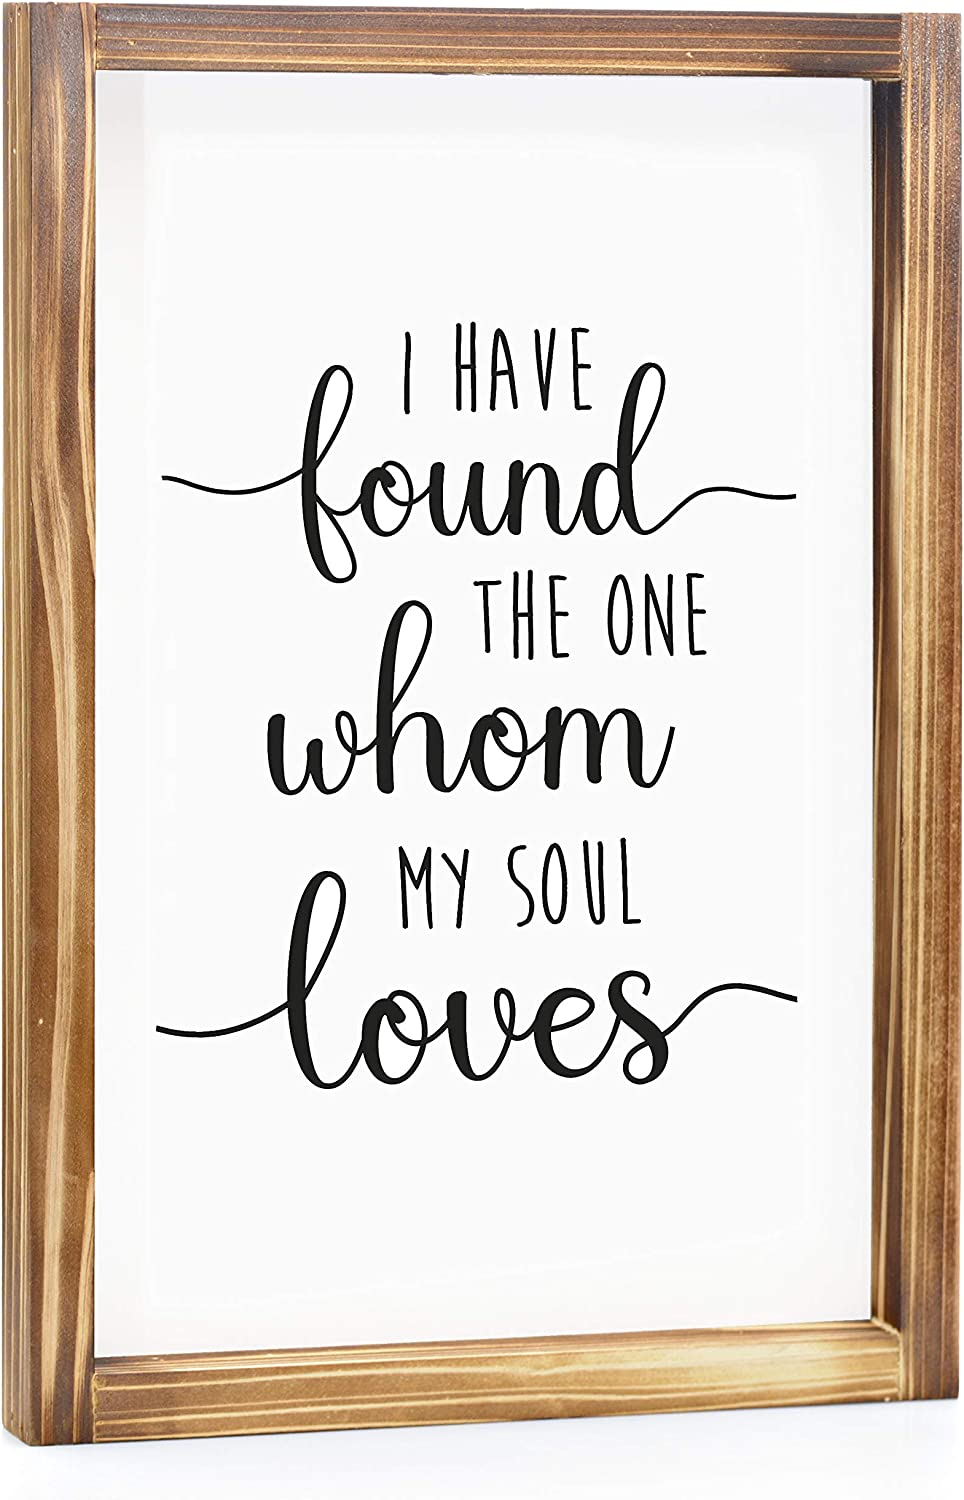 I Have Found the One Whom My Soul Loves Sign - Rustic Farmhouse Decor for the Home Sign - Wall Decorations for Living Room, Modern Farmhouse Wall Decor, Rustic Decor with Solid Wood Frame - 11x16 Inch